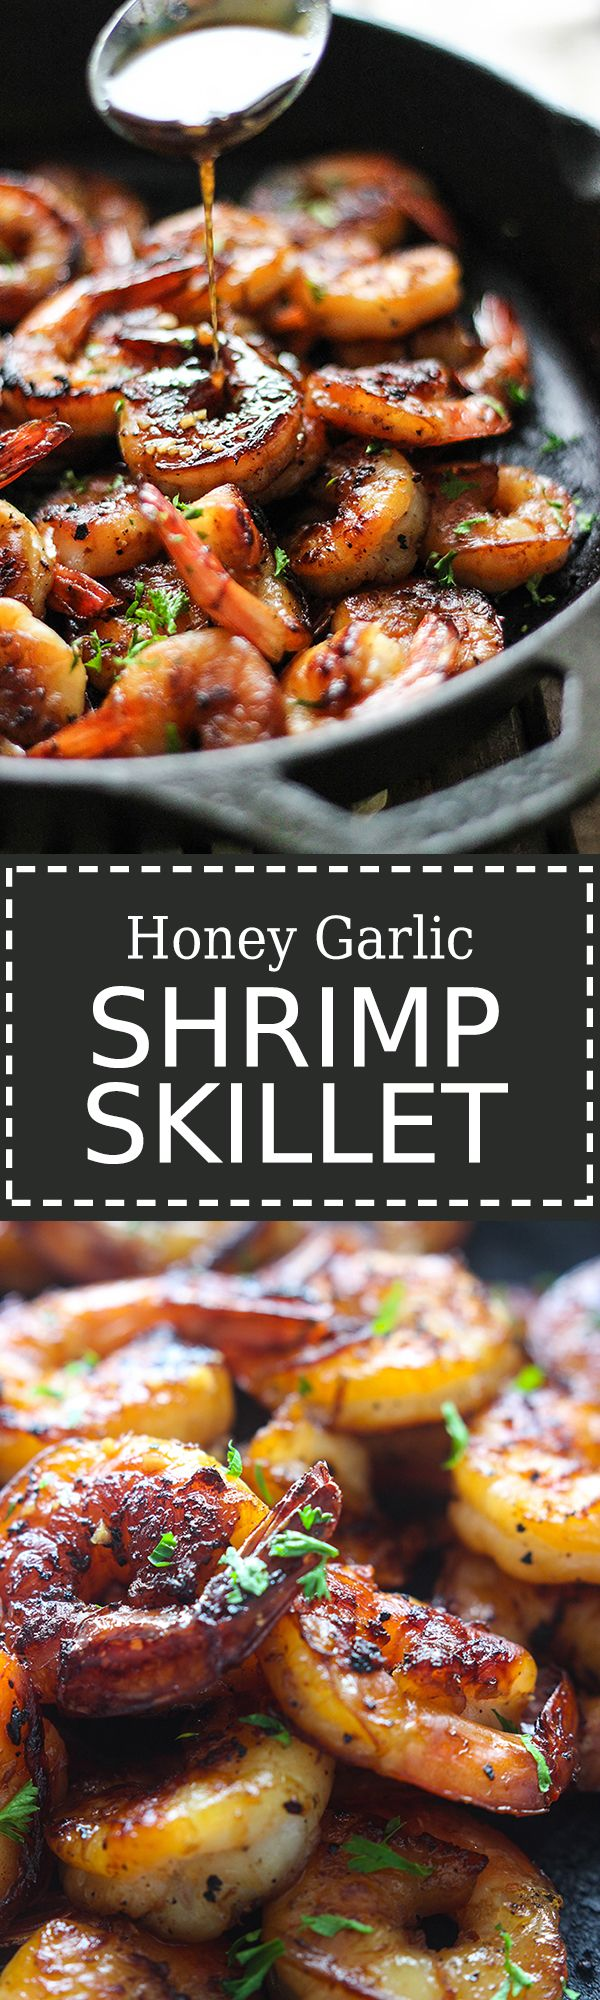 skillet asics pink only ingredients and    sweet easy shrimp This and five minutes  with less than cooked smoky super shoes honey is in garlic